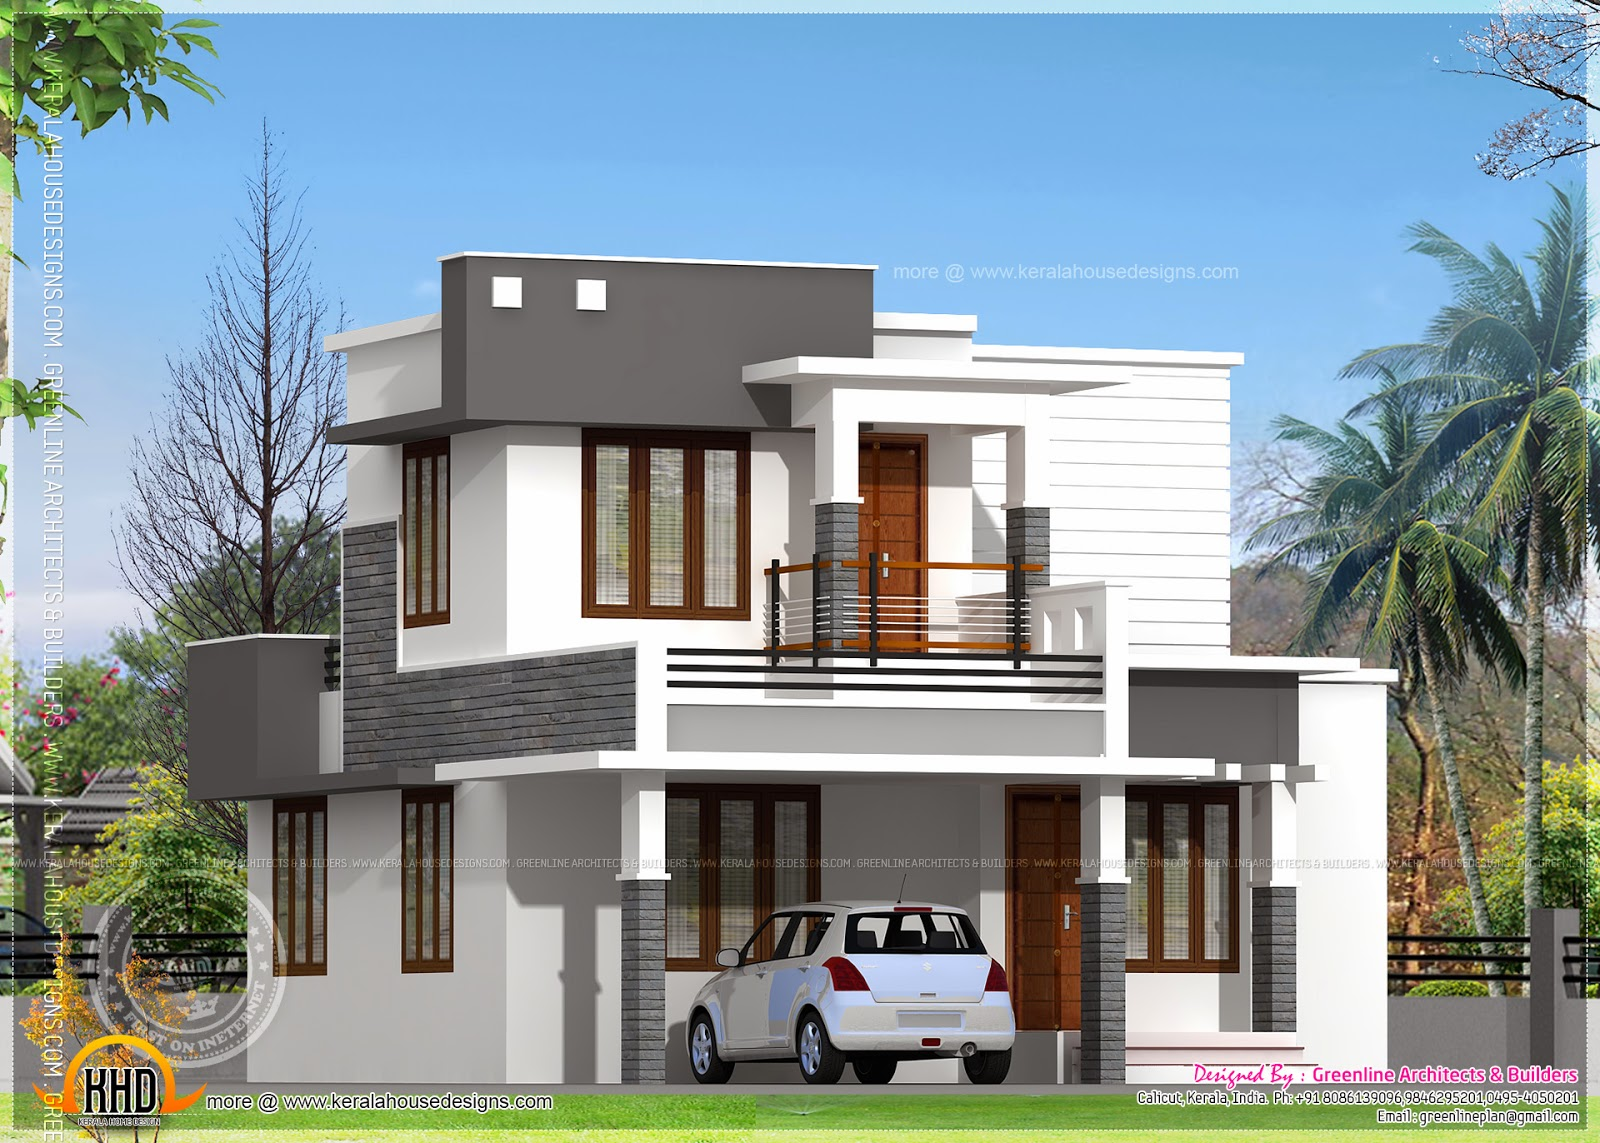 Small house flat roof designs joy studio design gallery House plan flat roof design